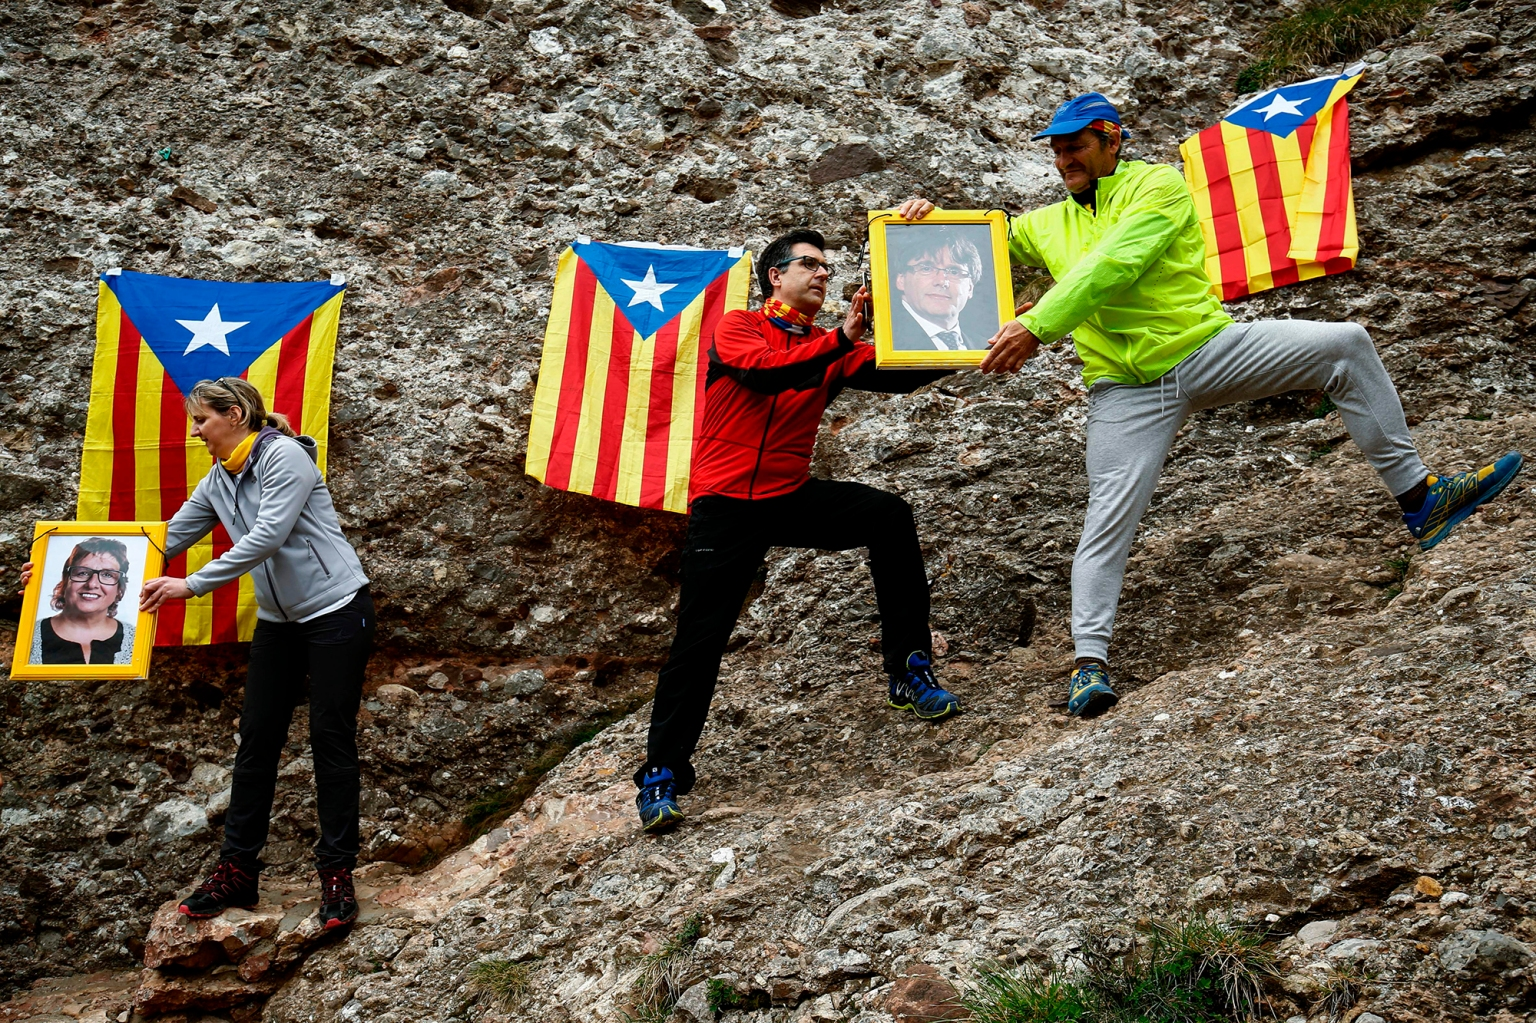 People pass along portraits of Catalonia's former president Carles Puigdemont and Dolors Bassa, former Catalan regional government counselor of labor, social affairs, and family, as they form a human chain in support of jailed and self-exiled Catalan politicians after hiking the Montserrat Mountain near Barcelona on April 28. PAU BARRENA/AFP/Getty Images